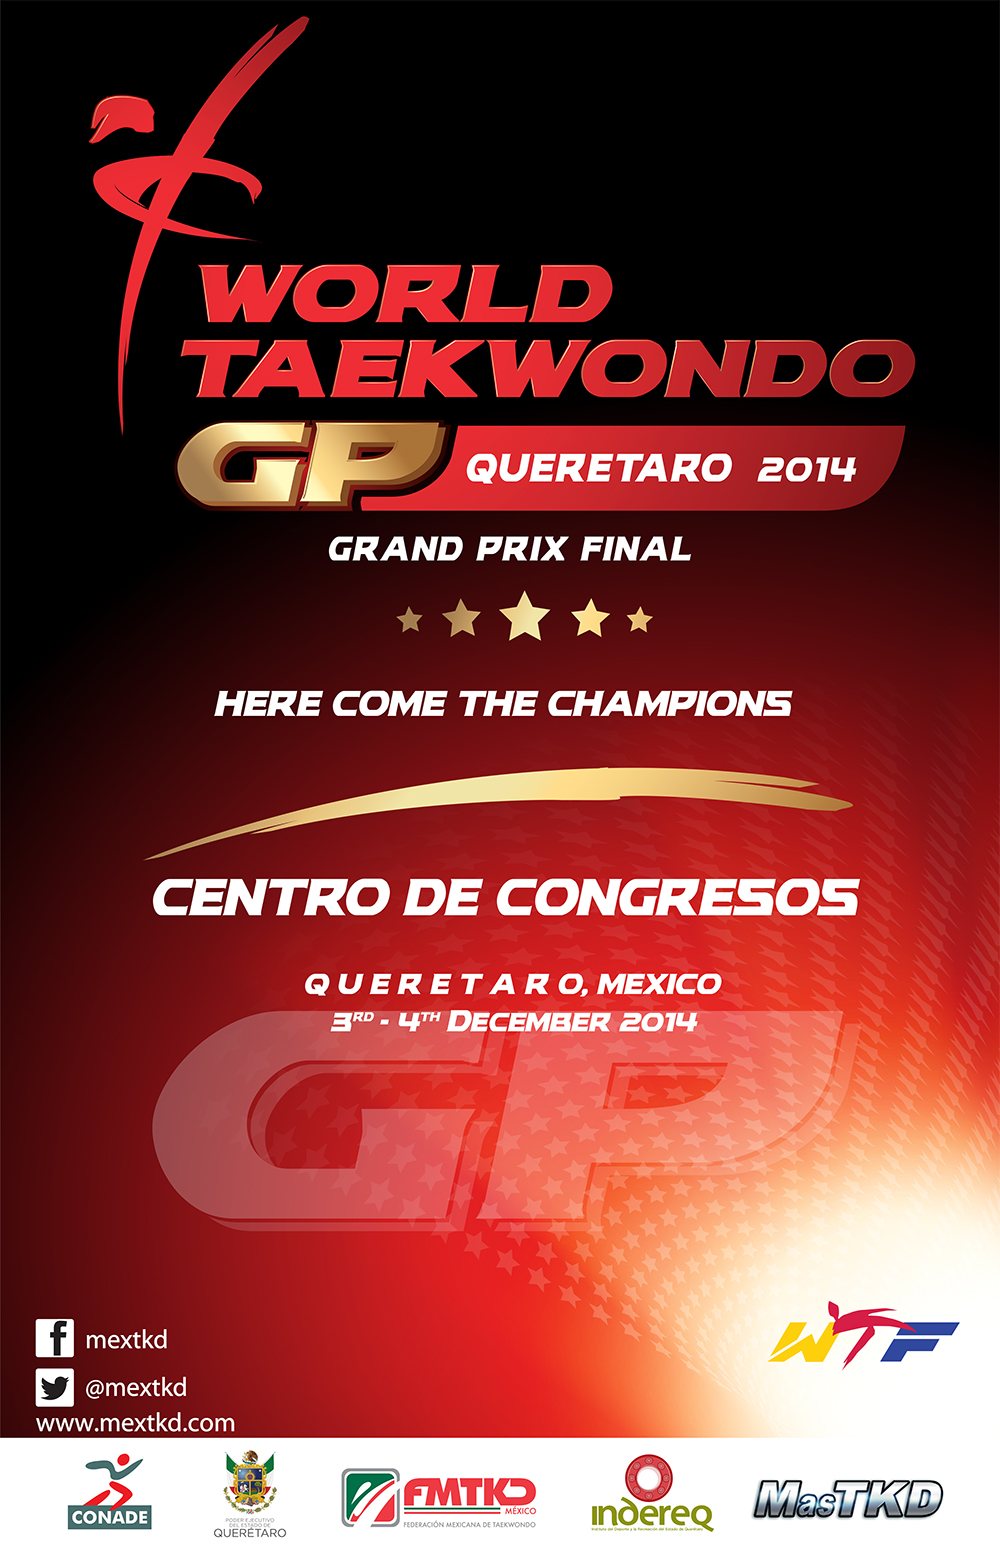 Cartel Grand Prix Final, Queretaro 2014